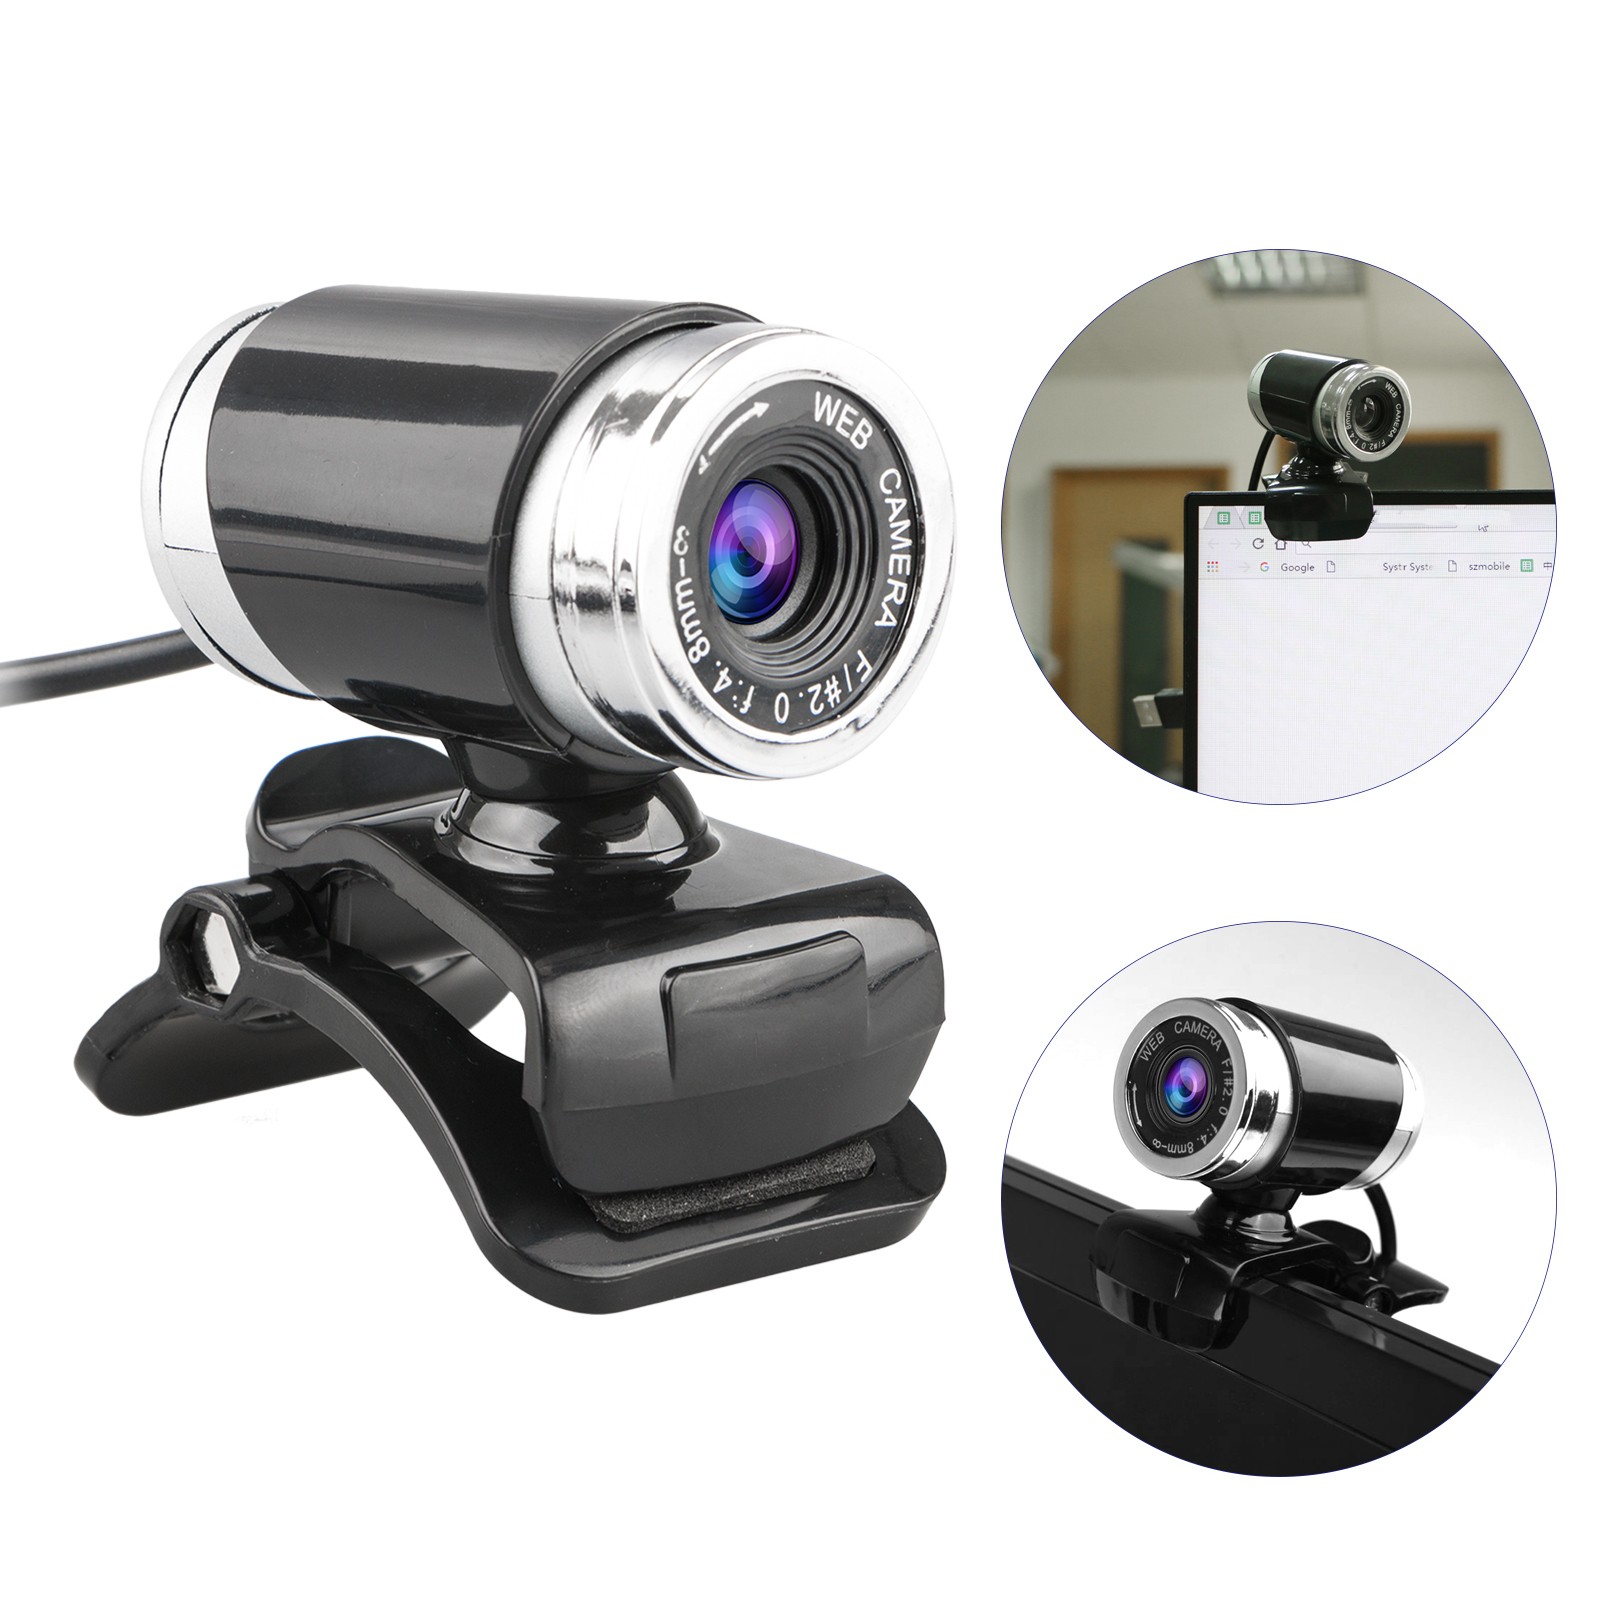 Webcam USB 12 Megapixel HD Pro Widescreen Video Full 1080p ...